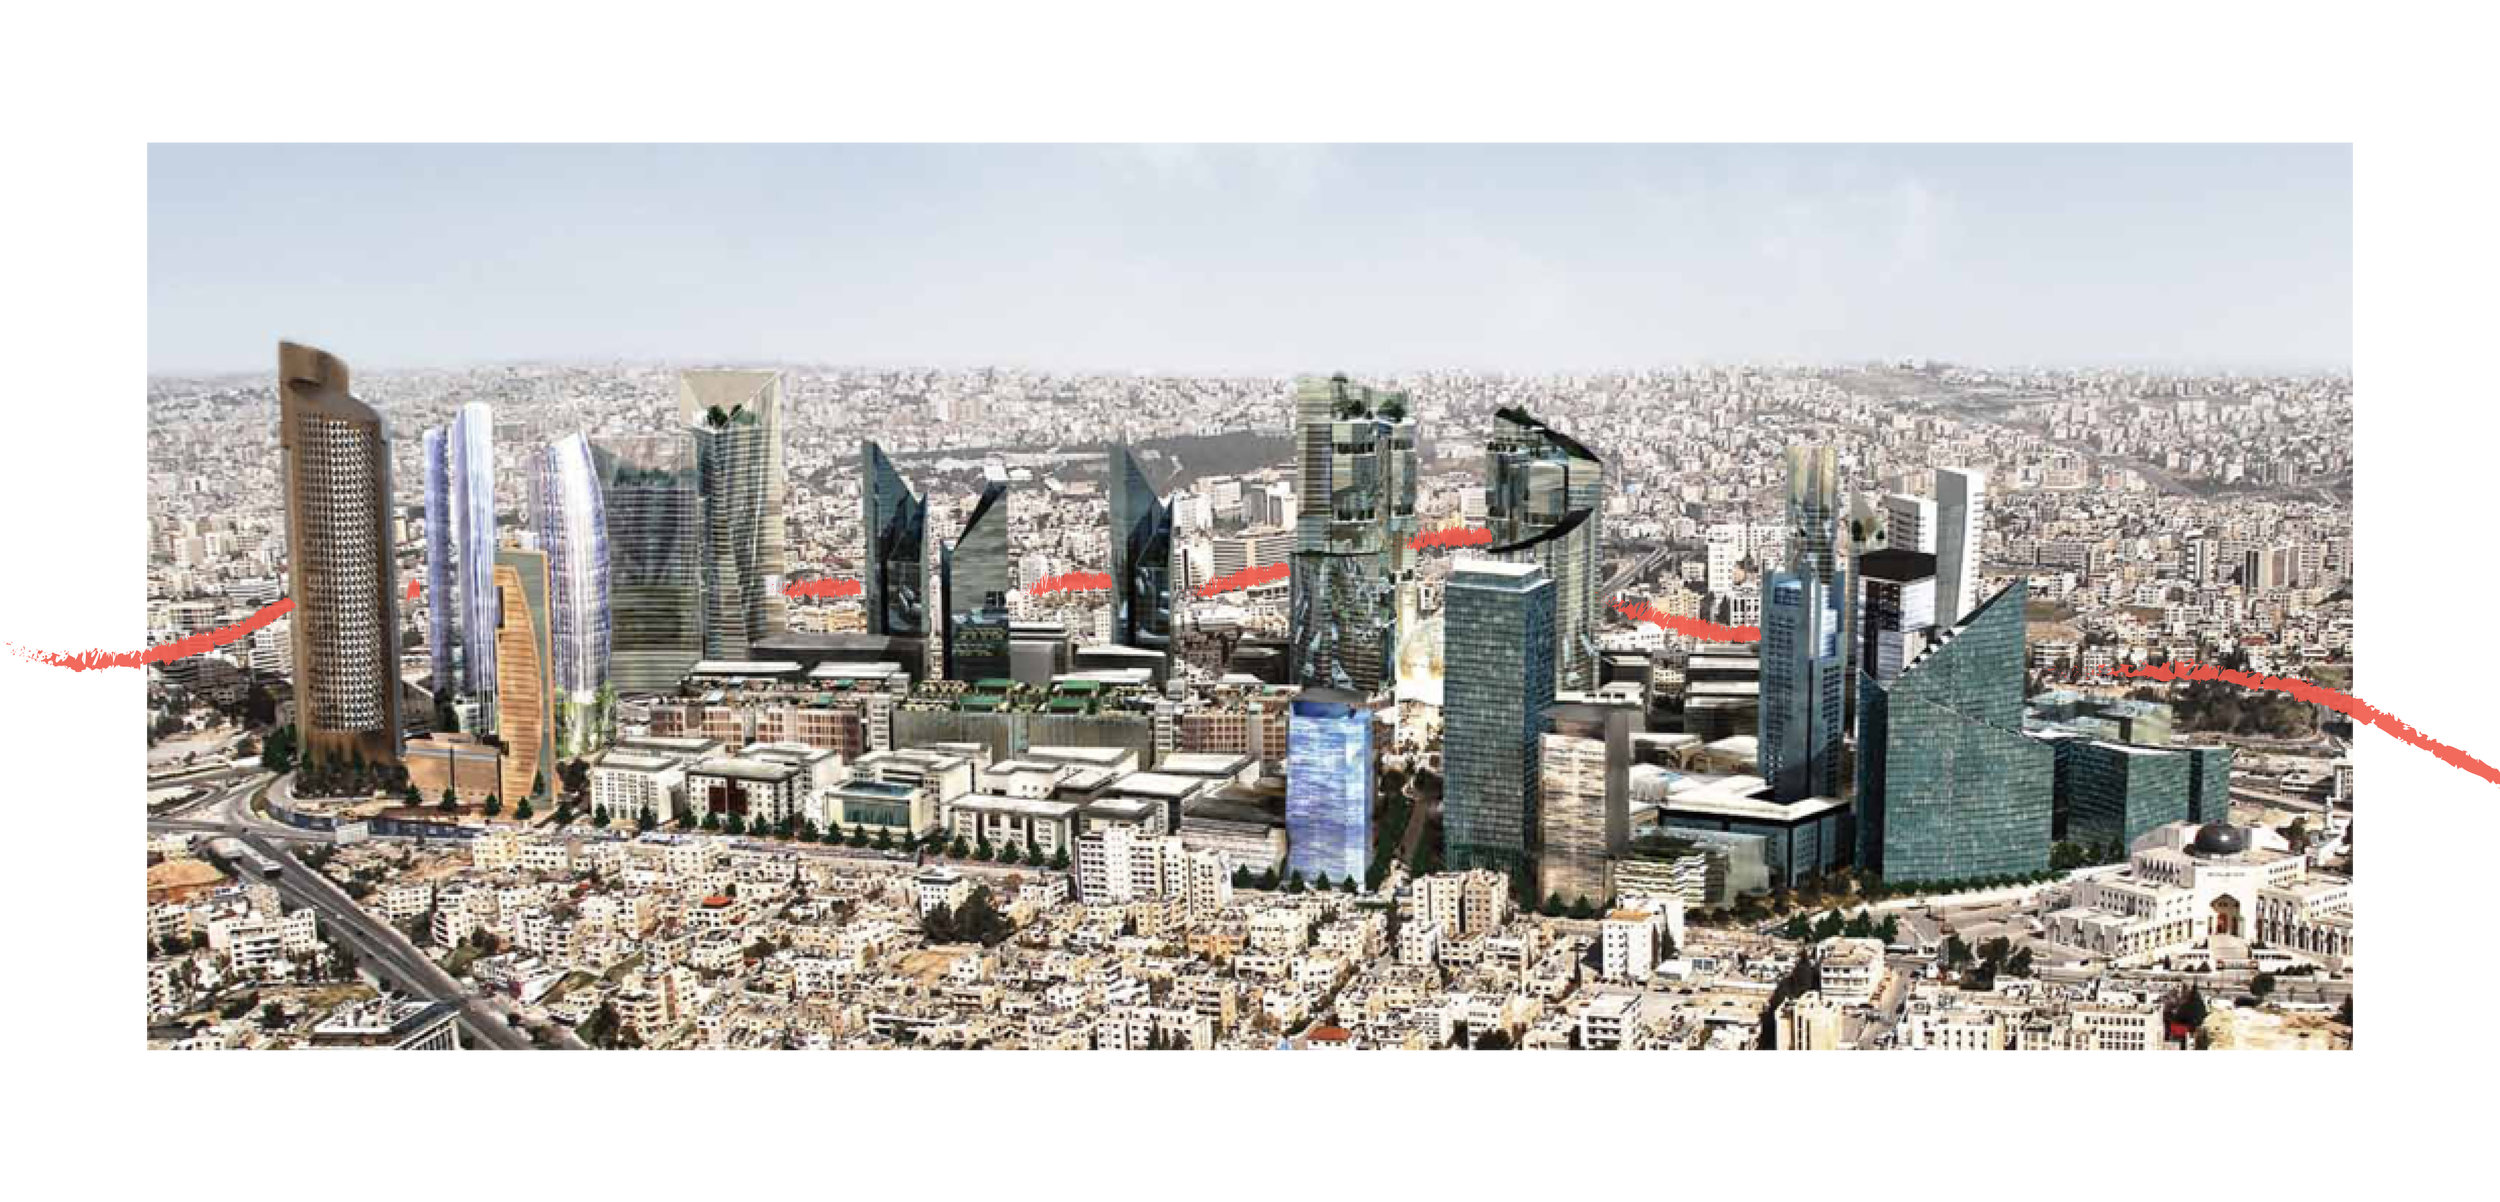 Al-Abdali Regeneration Project situated along a virtual edge between West and East Amman. Source: Abdali Investment & Development Psc.